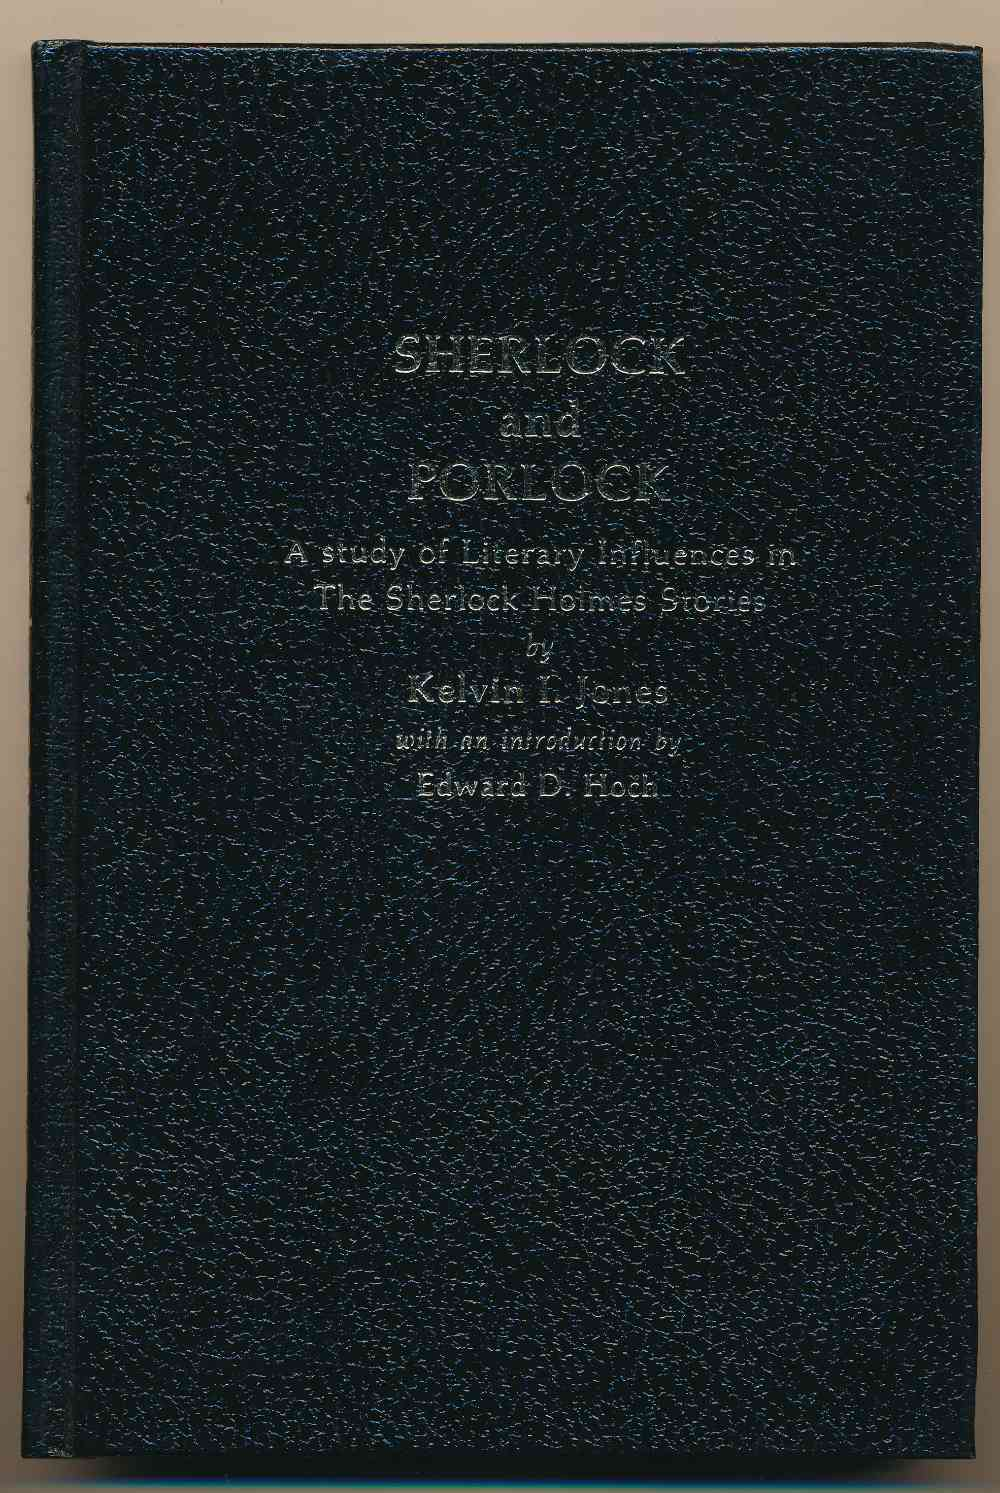 Sherlock and Porlock : a study of literary influences in the Sherlock Holmes stories